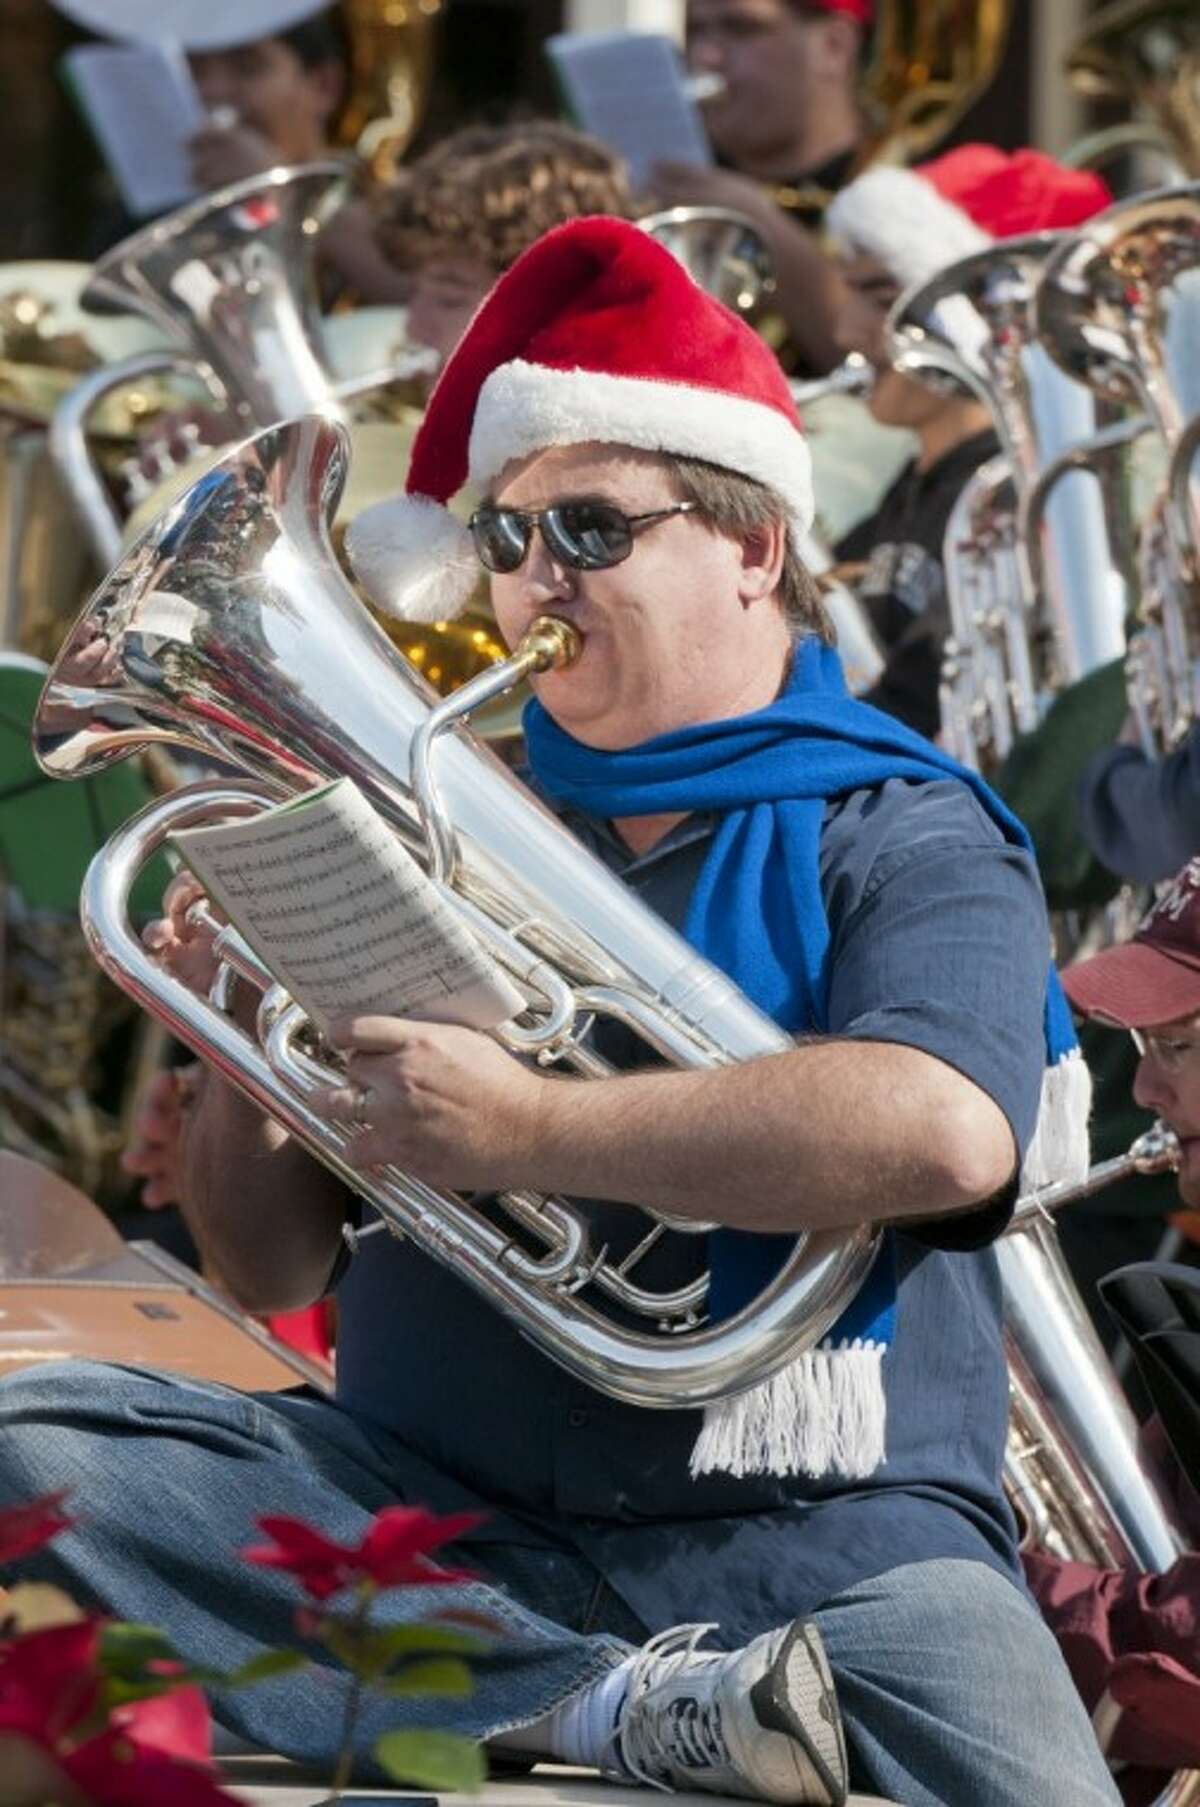 More than 200 sousaphone, euphonium and baritone musicians will perform throughout the day today in Market Street's Central Park beginning at noon.